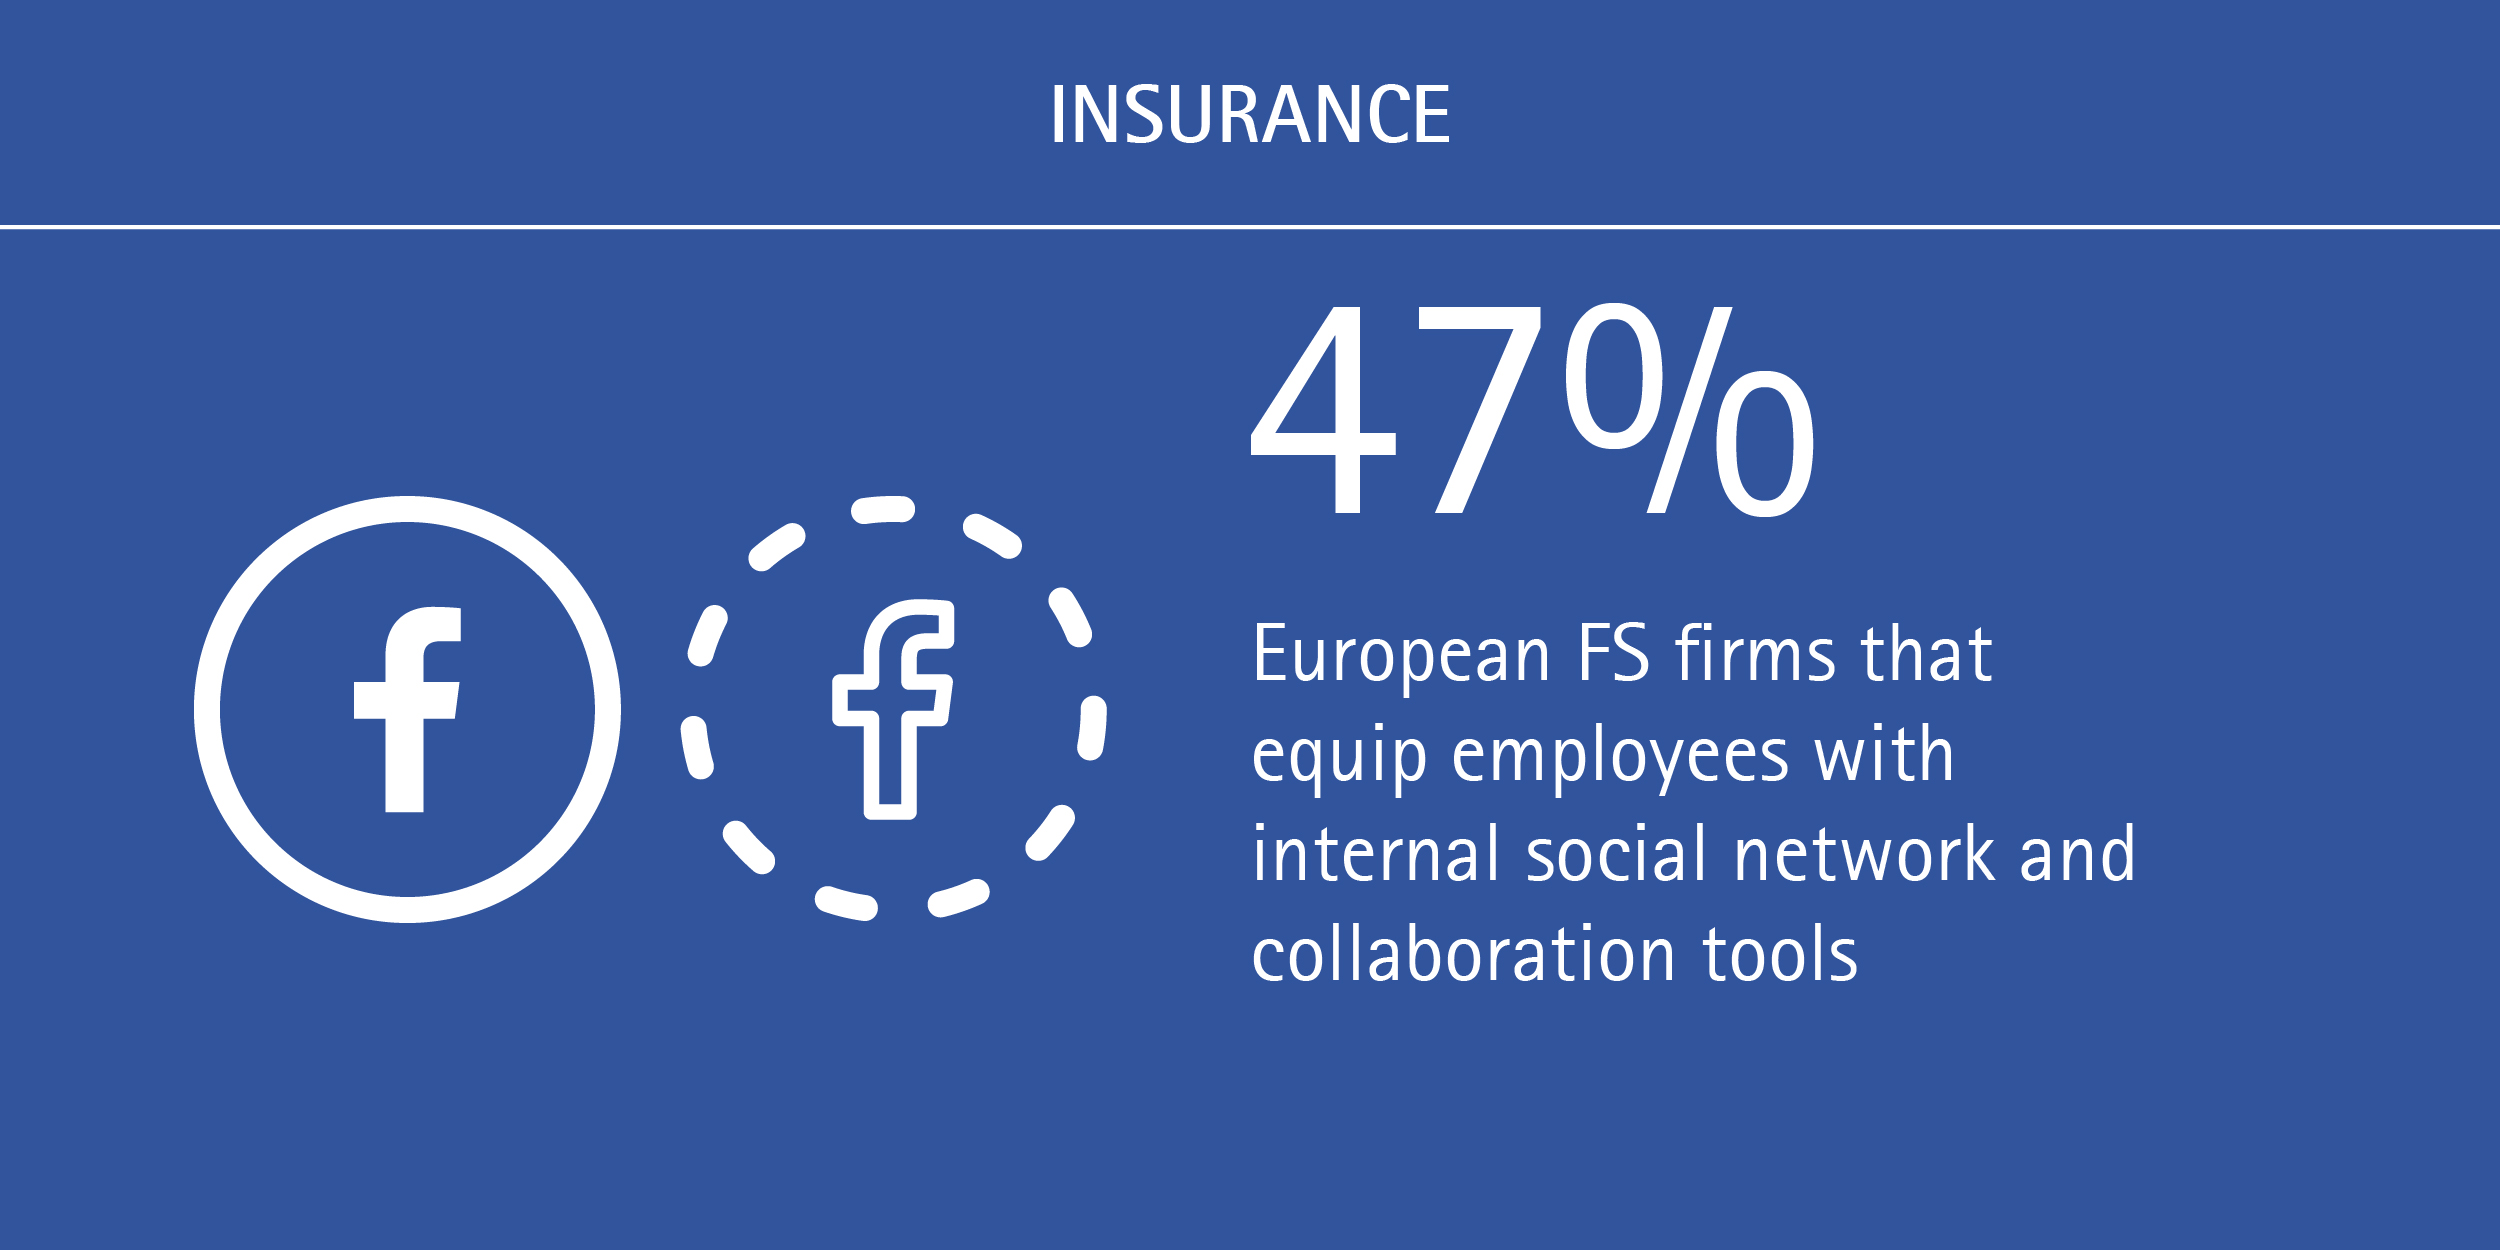 For European insurers and banks, it's time to bring digital in-house - European firms that equip employees with internal social network and collaboration tools